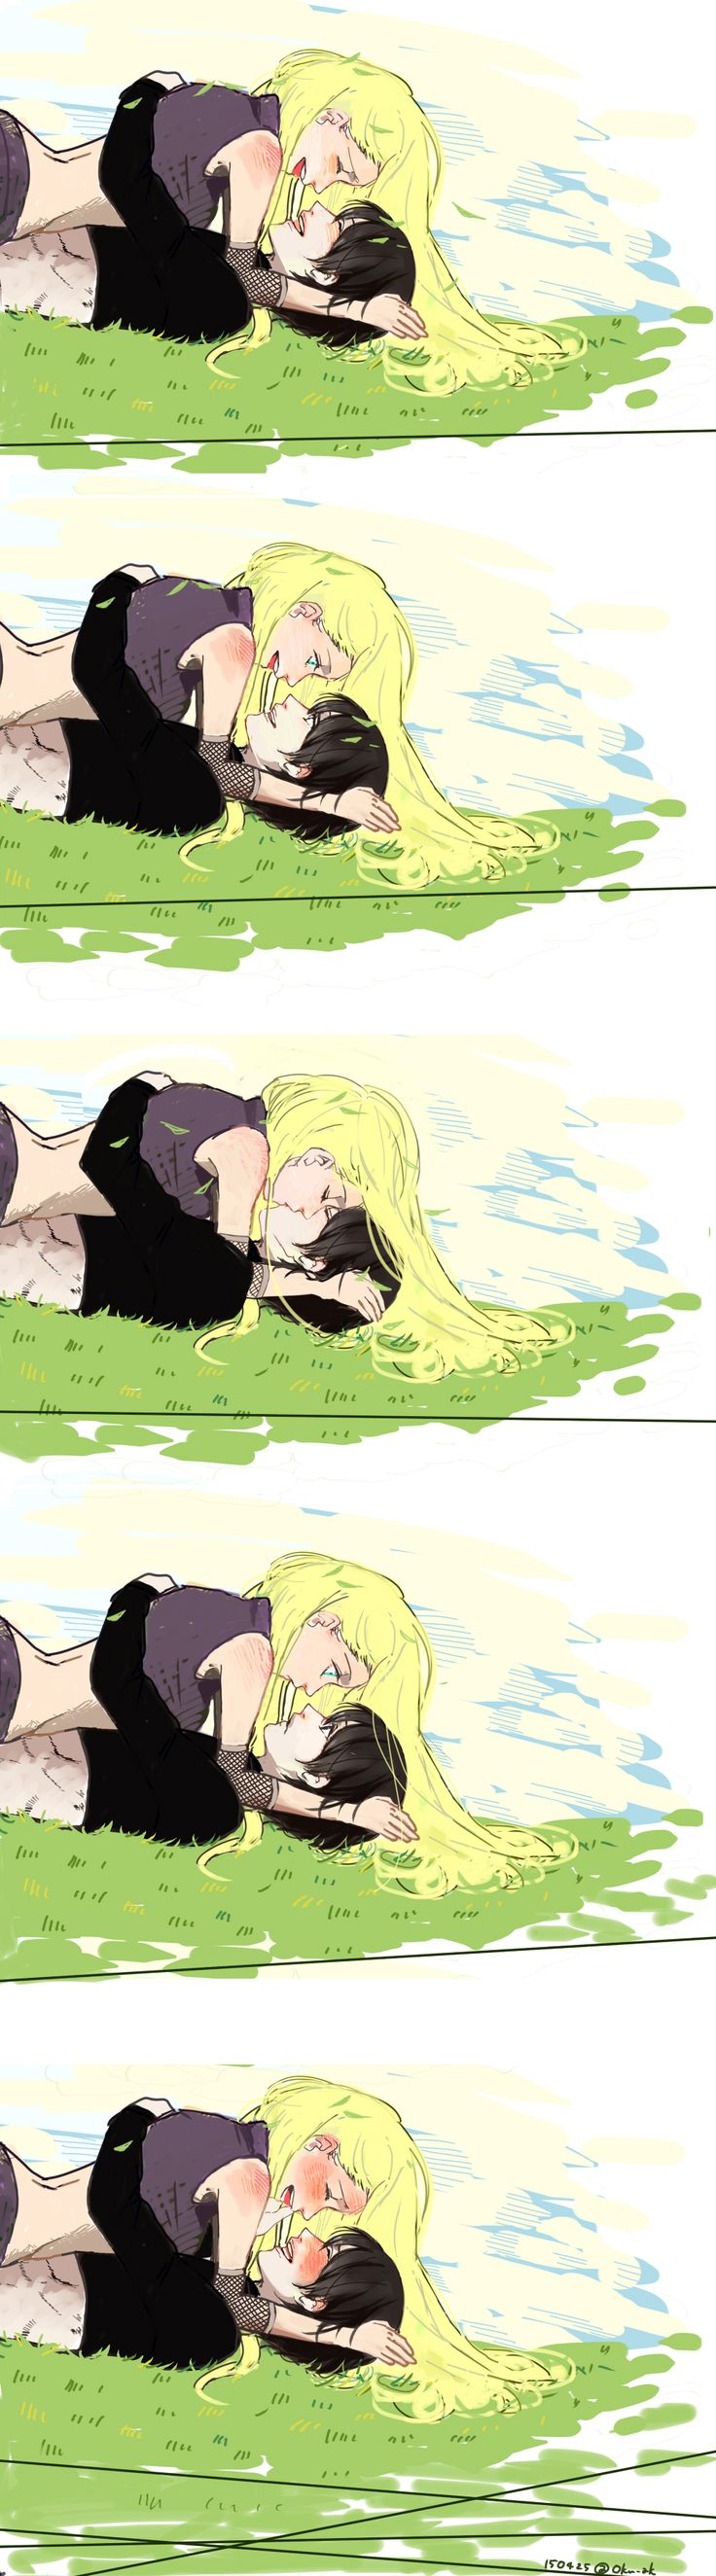 Ino and Sai - comic